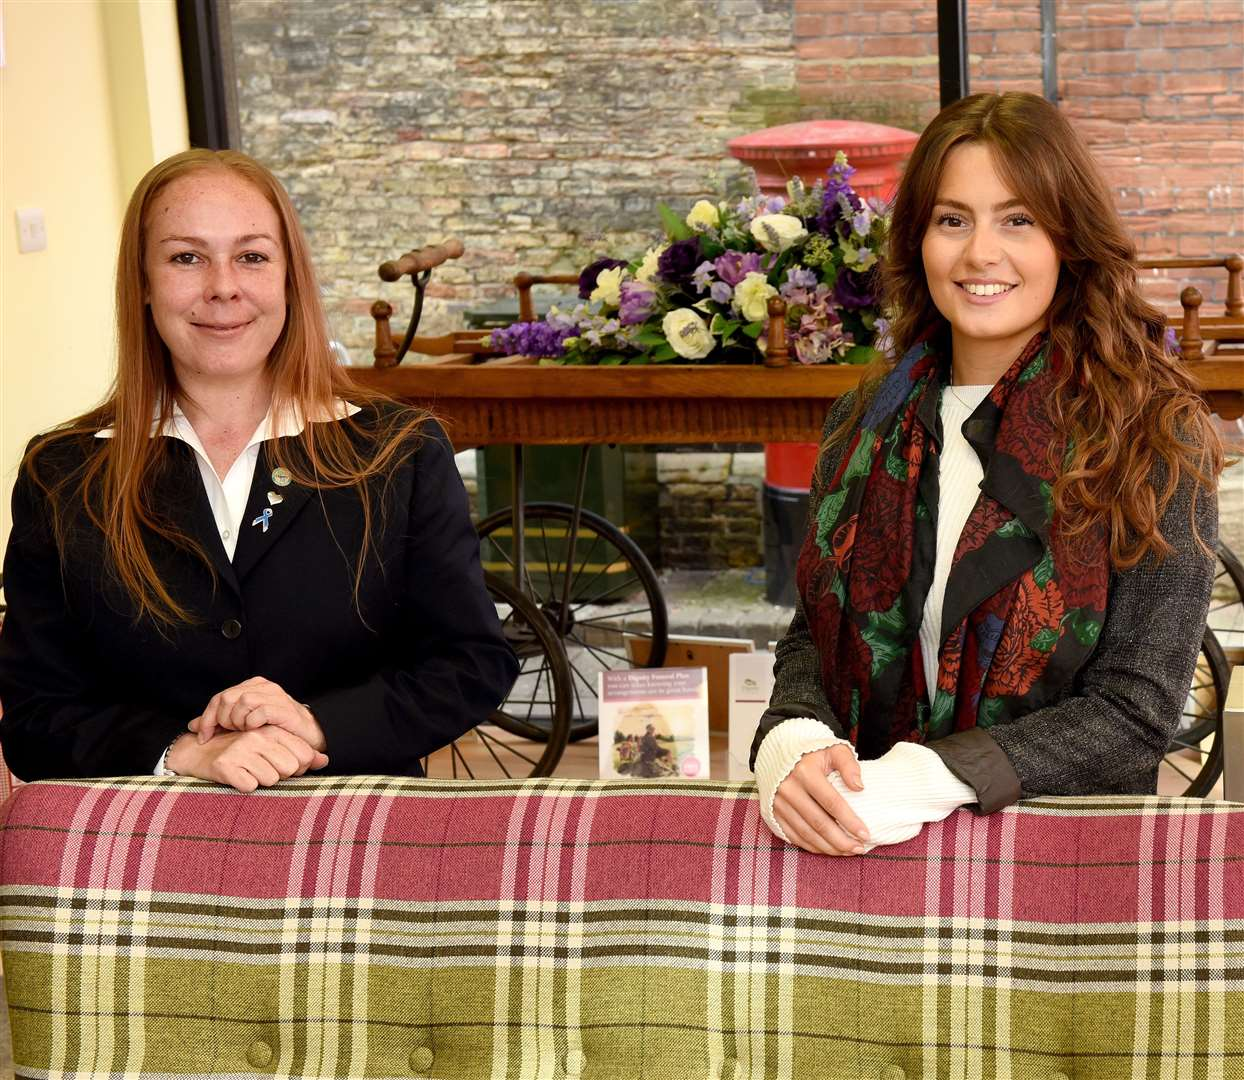 At RH Fayers and Sons Funeral Directors, from left to right, Claire Jordan and Ilaria Pezzella.  MLNF-21PM10051